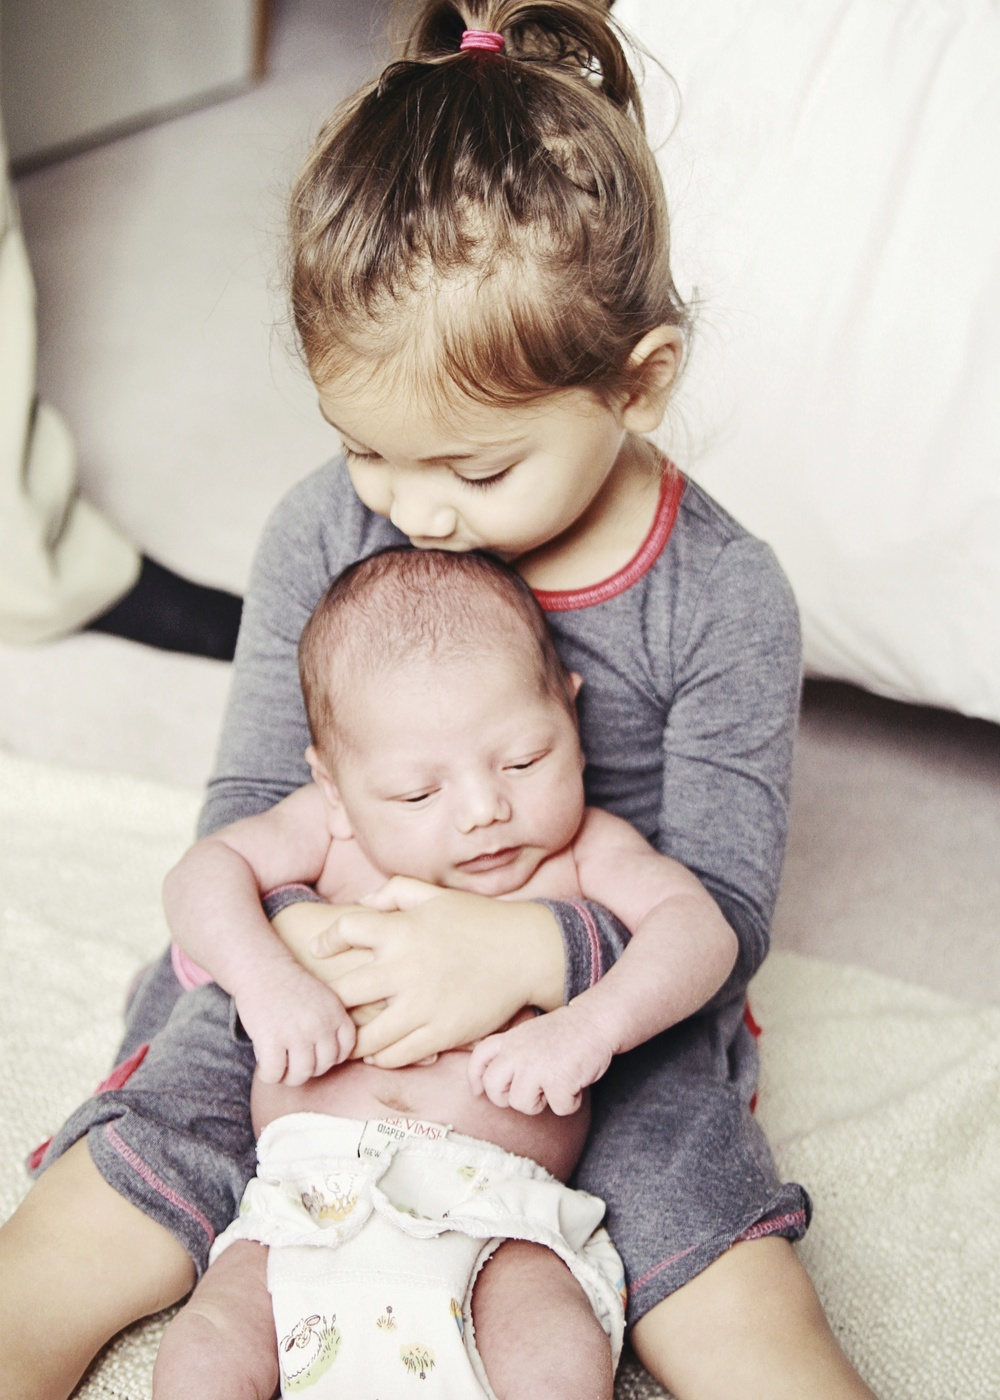 Our two-year-old daughter with her two-week-old baby brother; photo by Shayne Berry of  Catchlights Photography